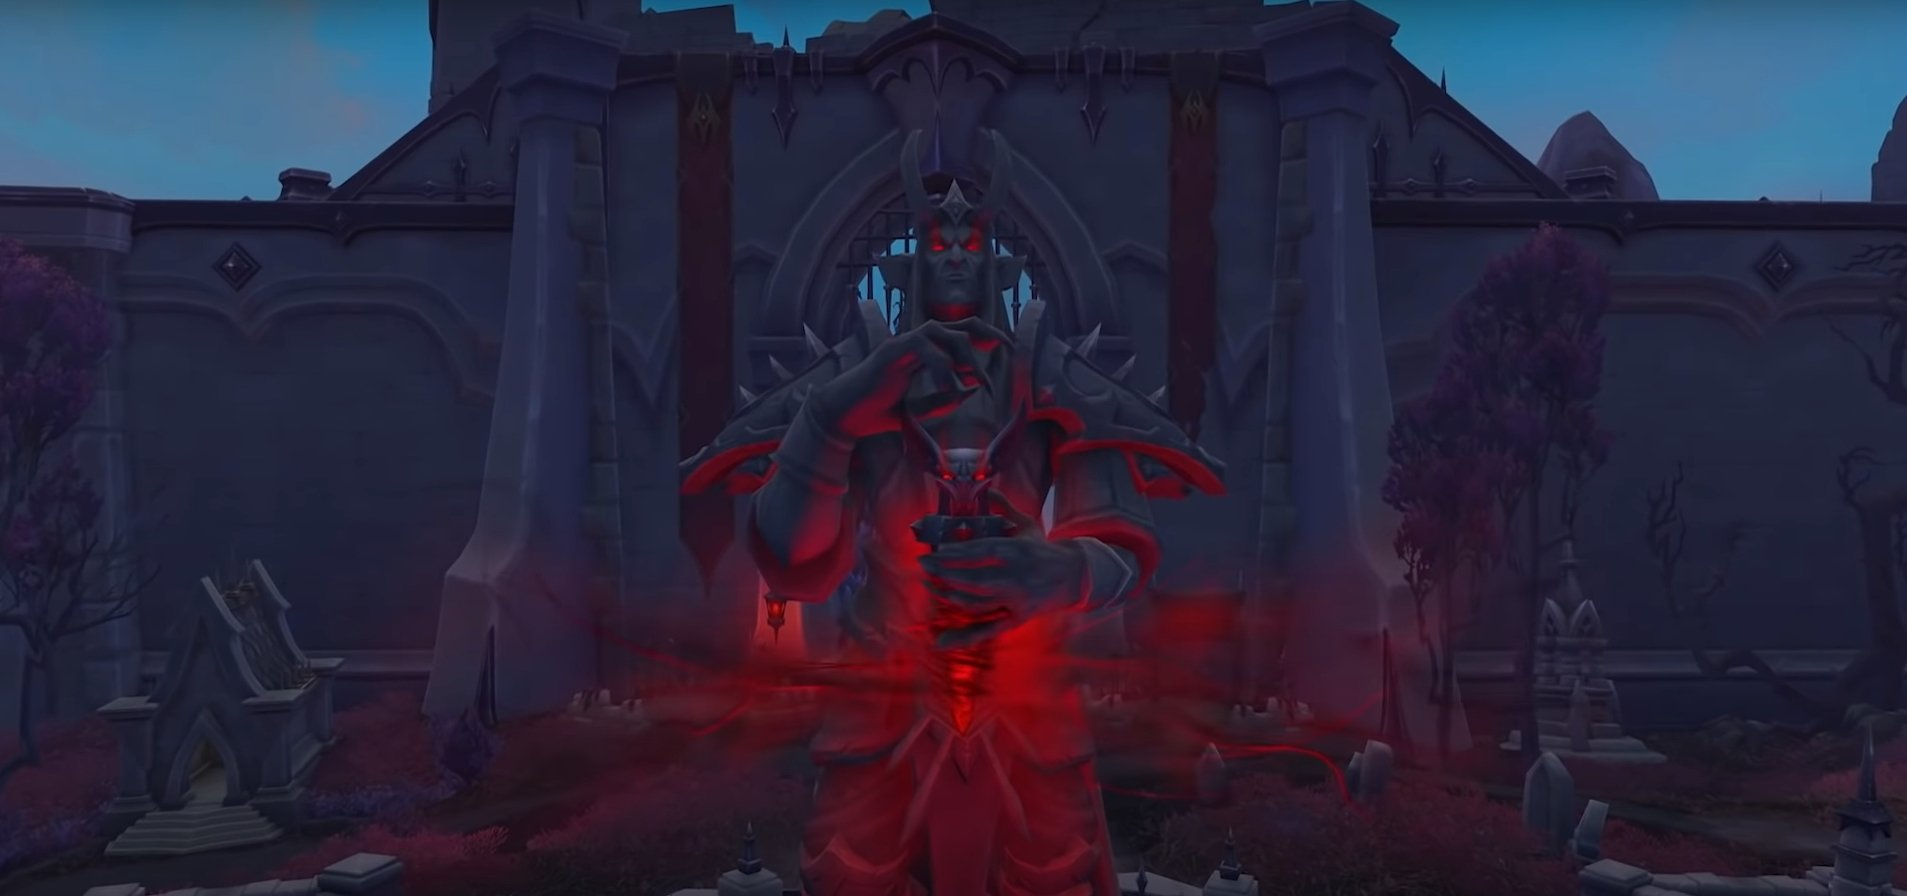 Players Get A Glimpse Into Revendreth With Blizzard's Latest World Of Warcraft: Shadowlands Sneak Peek